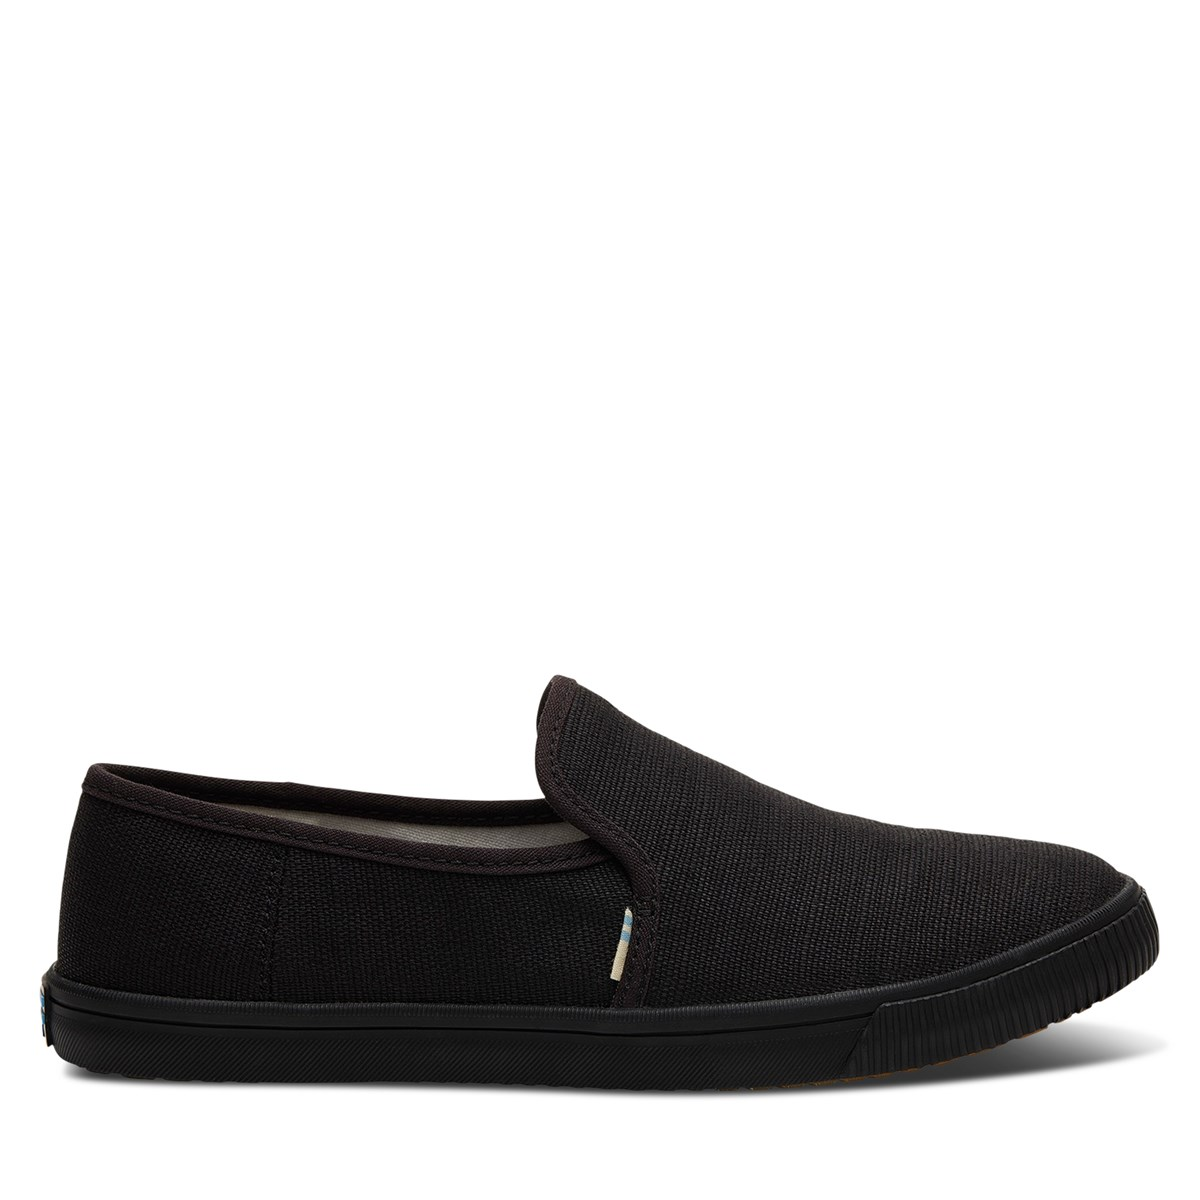 Women's Vegan Clemente Heritage Slip on Shoes in All Black